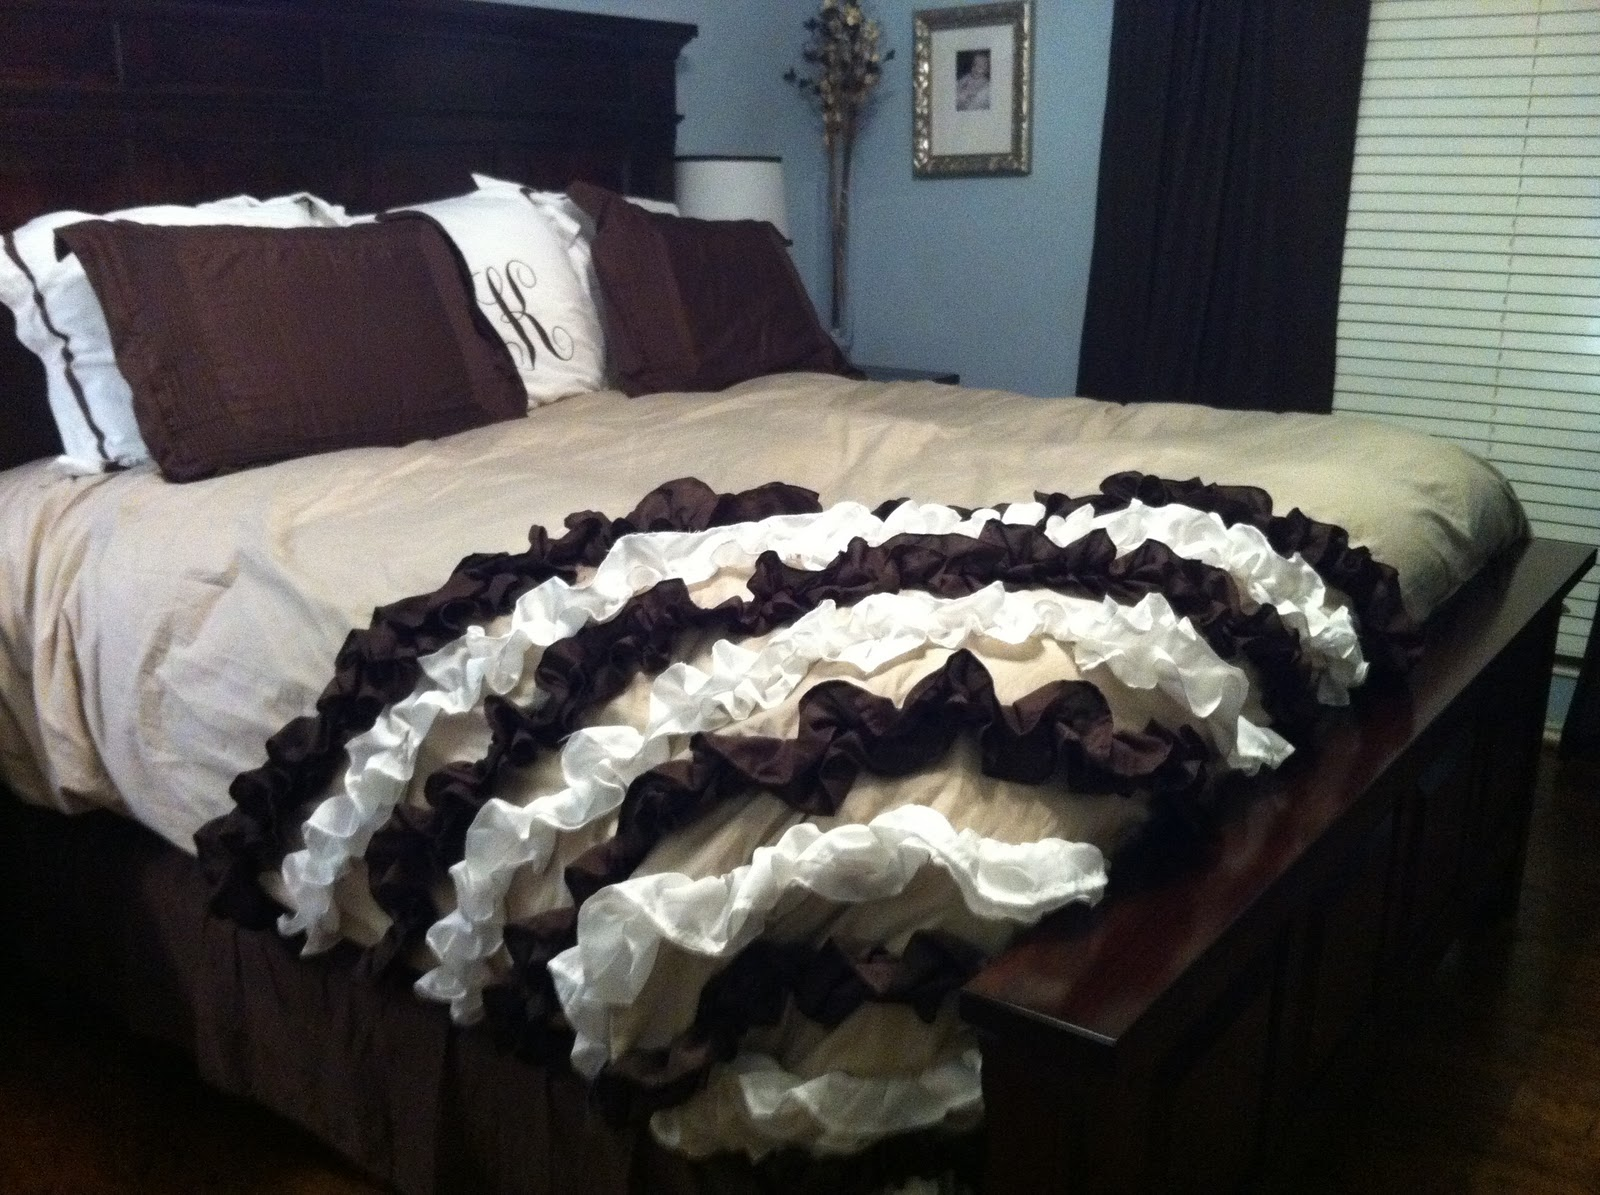 Want to get crafty imitation flattery ruffle bedspread for Frilly bedspreads